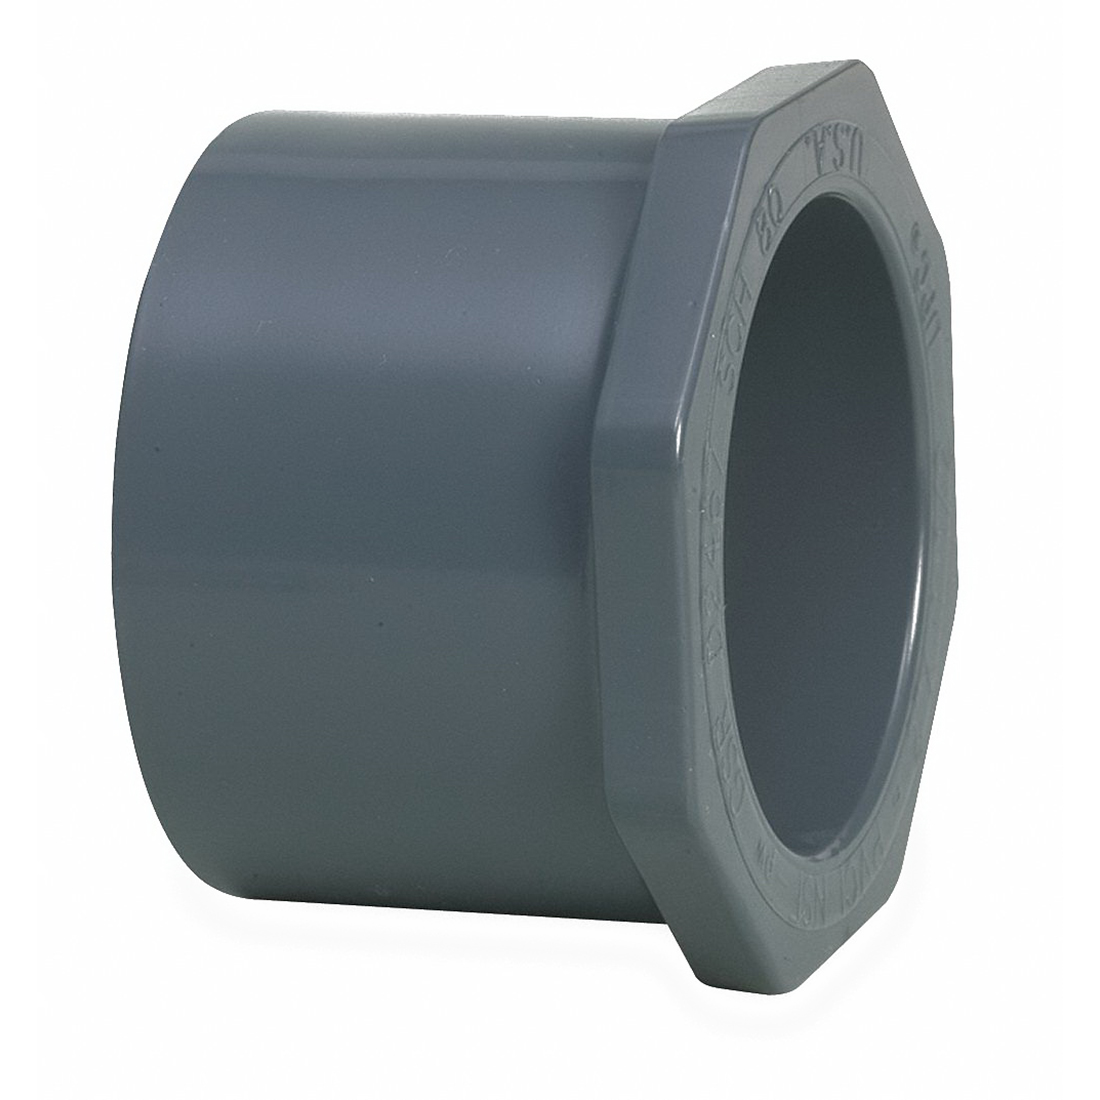 Gray CPVC SCH 80 Flush Style Reducer Bushing, 2 in x 3/4 in, Spigot x Socket